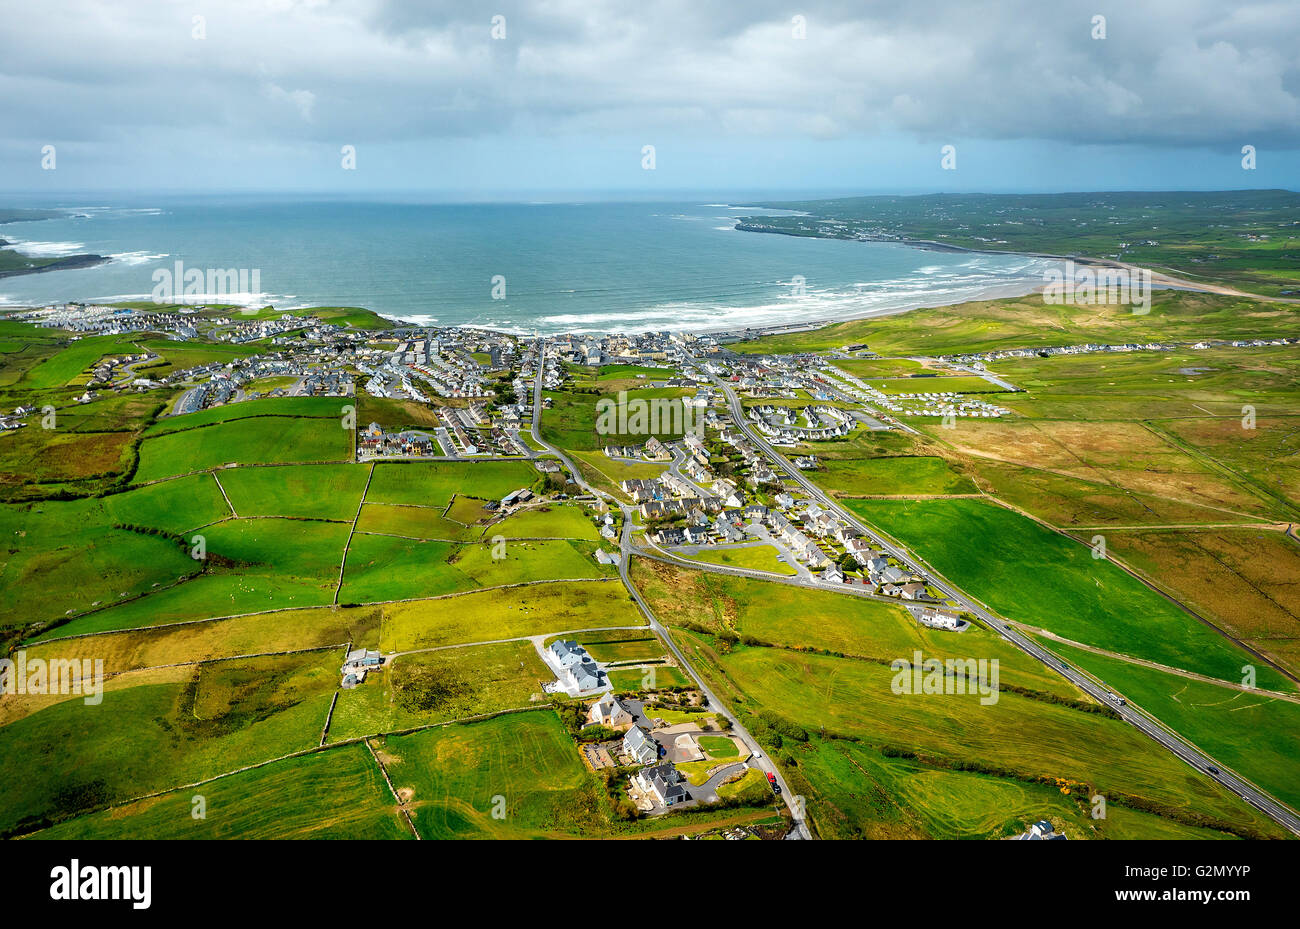 Aerial view, Lahinch at Liscannor Bay, Lahinch, COUNTY CLARE, Clare, Ireland, Europe, Europe IE, Europe, Aerial - Stock Image